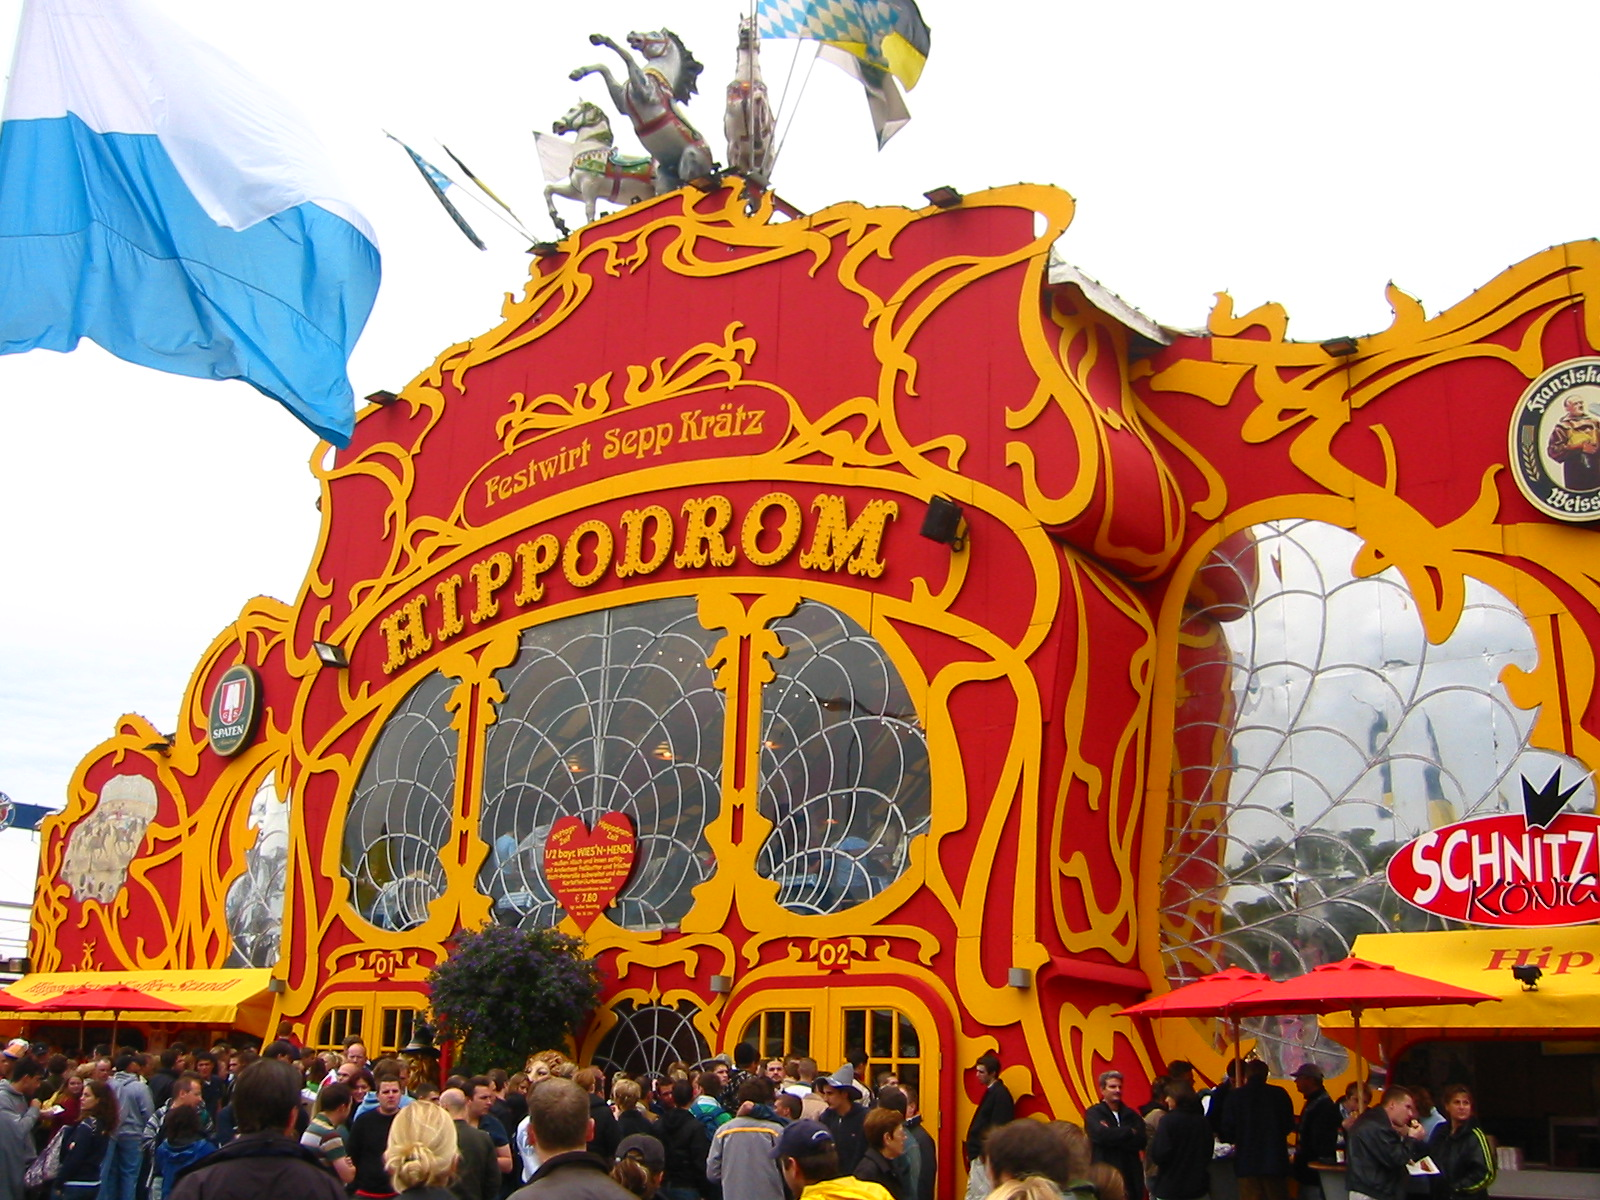 Visiting the Hippodrom for Oktoberfest